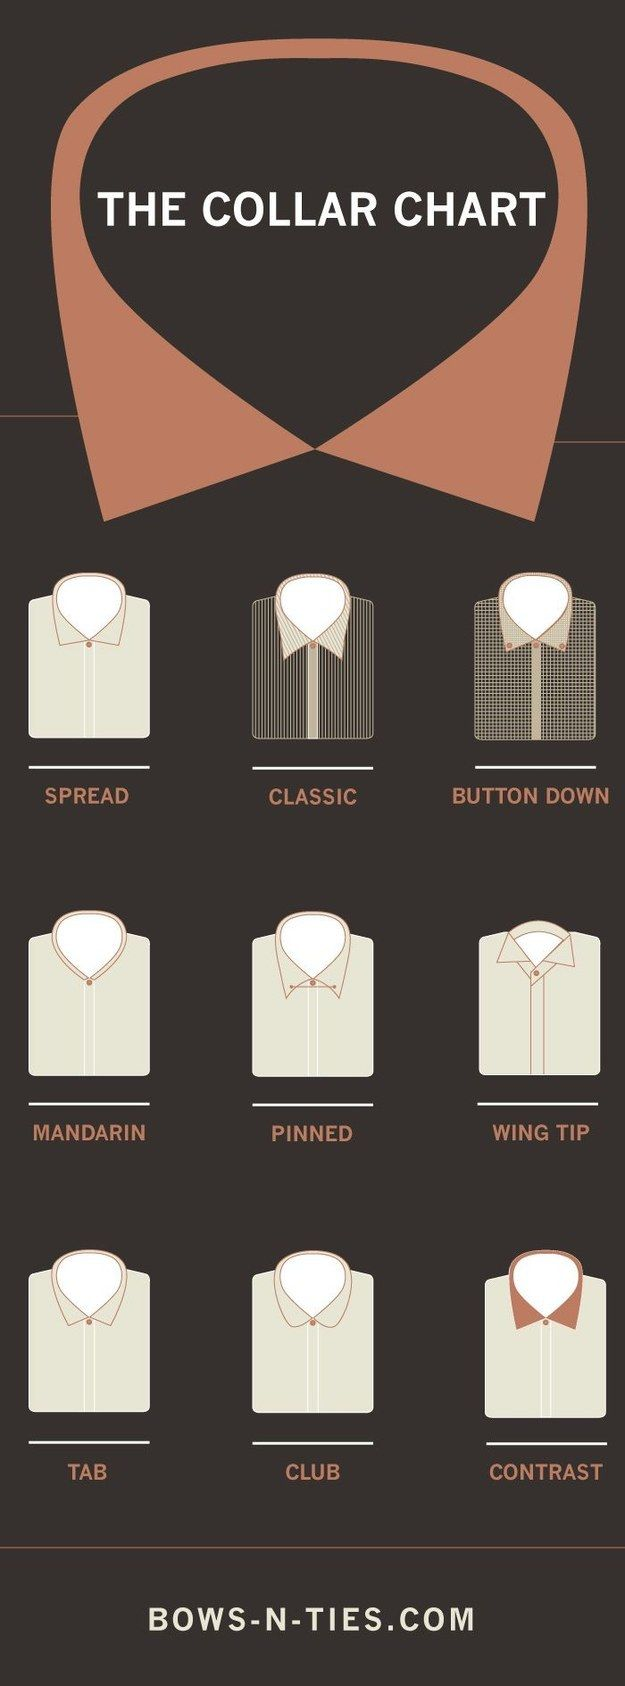 Know your collar. | 25 Life-Changing Style Charts Every Guy Needs Right Now #Style #Infographic